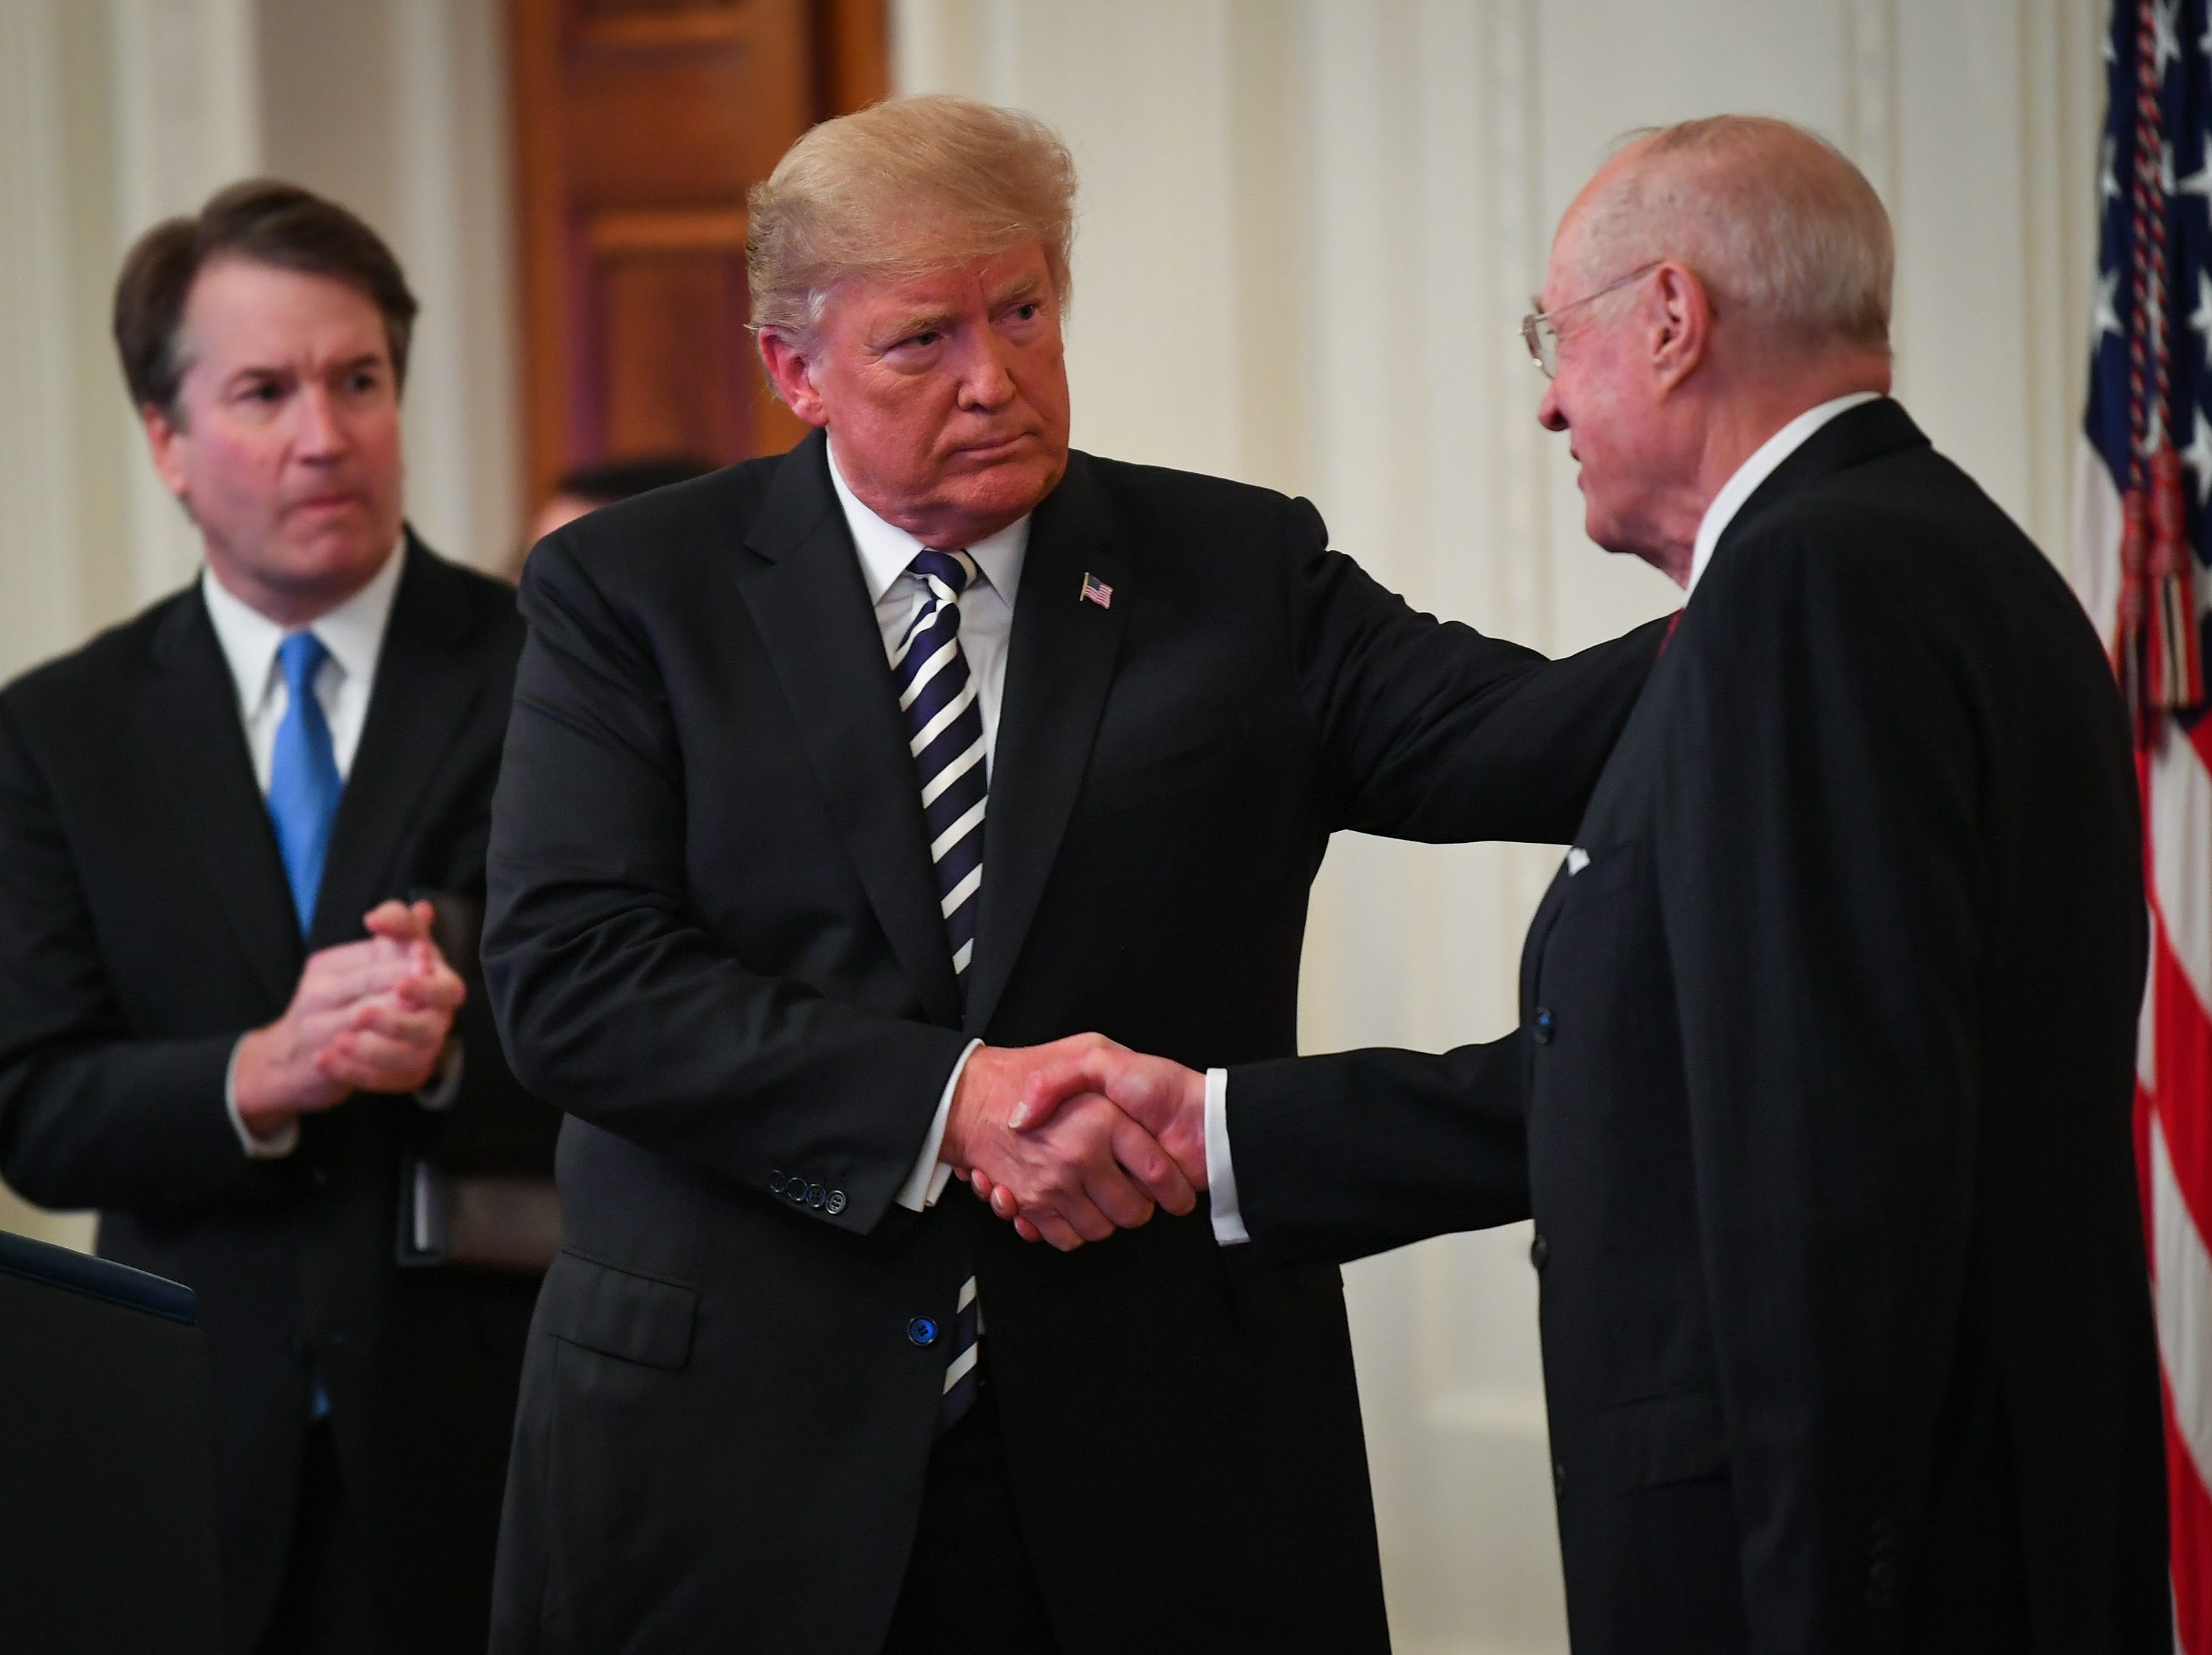 President Donald Trump acknowledges retiring Supreme Court Justice Anthony Kennedy, right, during ceremonial swearing-in held at the East Room of the White House for newly confirmed Supreme Court Justice Brett Kavanaugh, left, on Oct. 8, 2018.